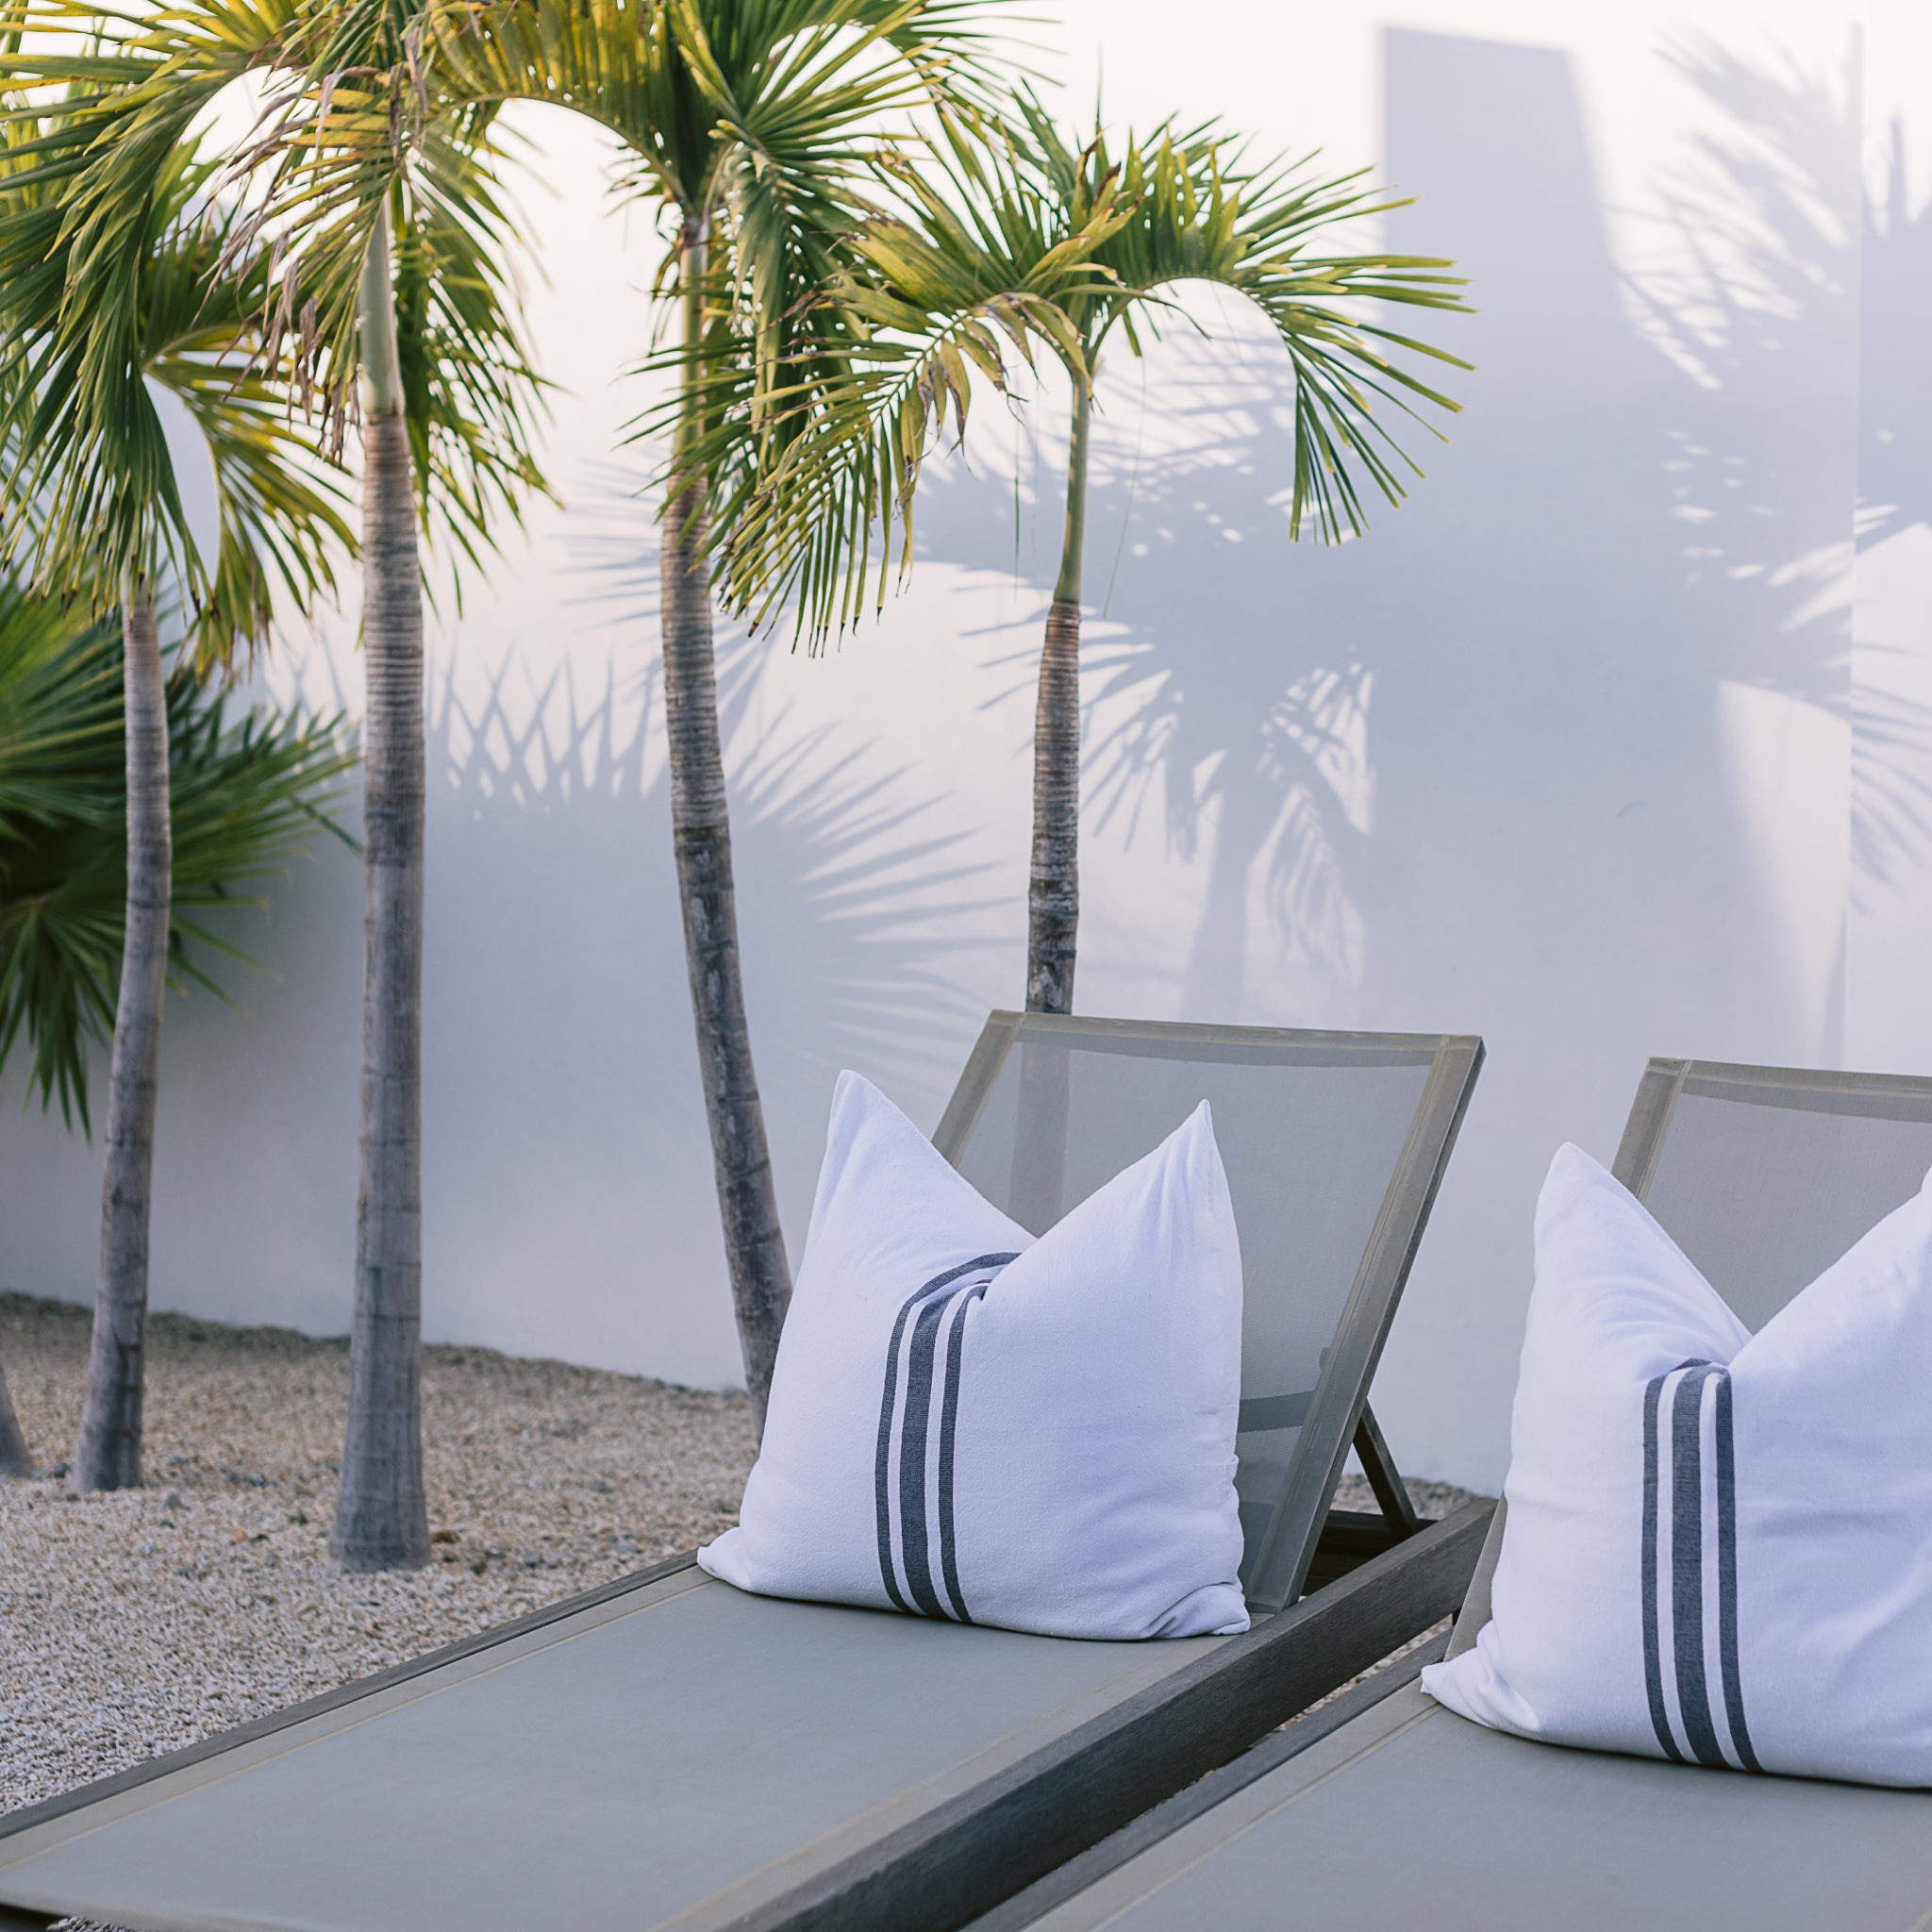 Lounge chairs with white extra-large throw pillows are next to palm trees.